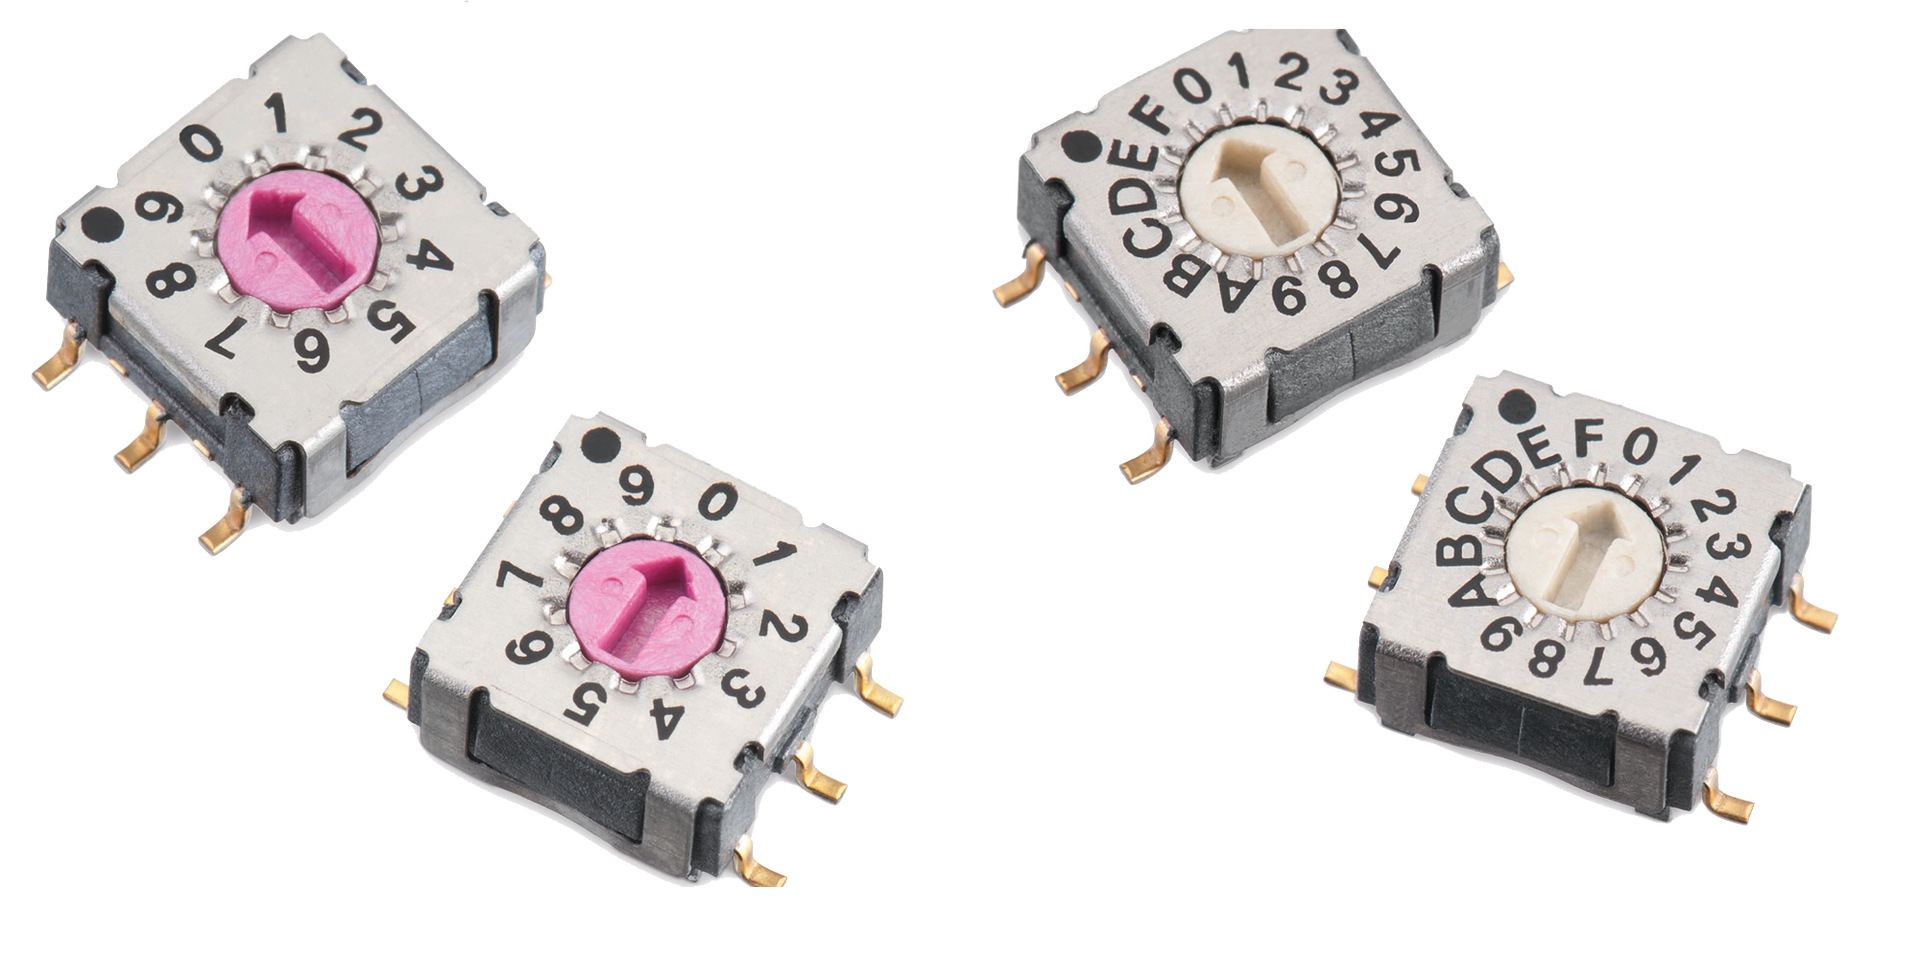 WS-ROSV SMD Rotary Switch 7x7 mm with Arrow Type Actuator Picture